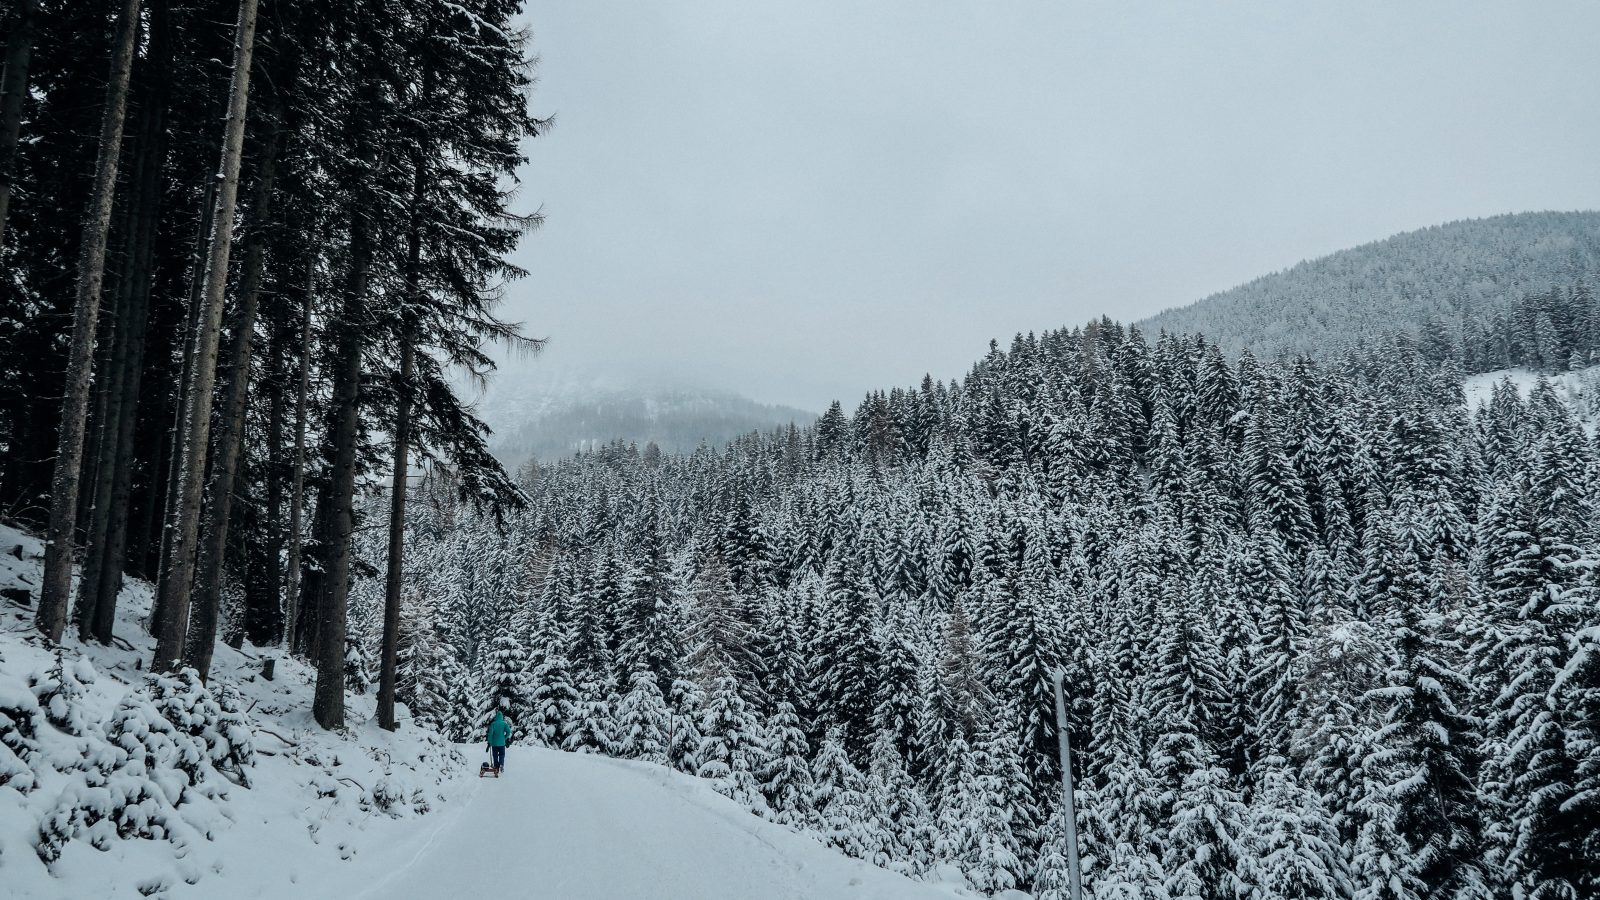 Snowy Forest Free Stock Photos Life Of Pix